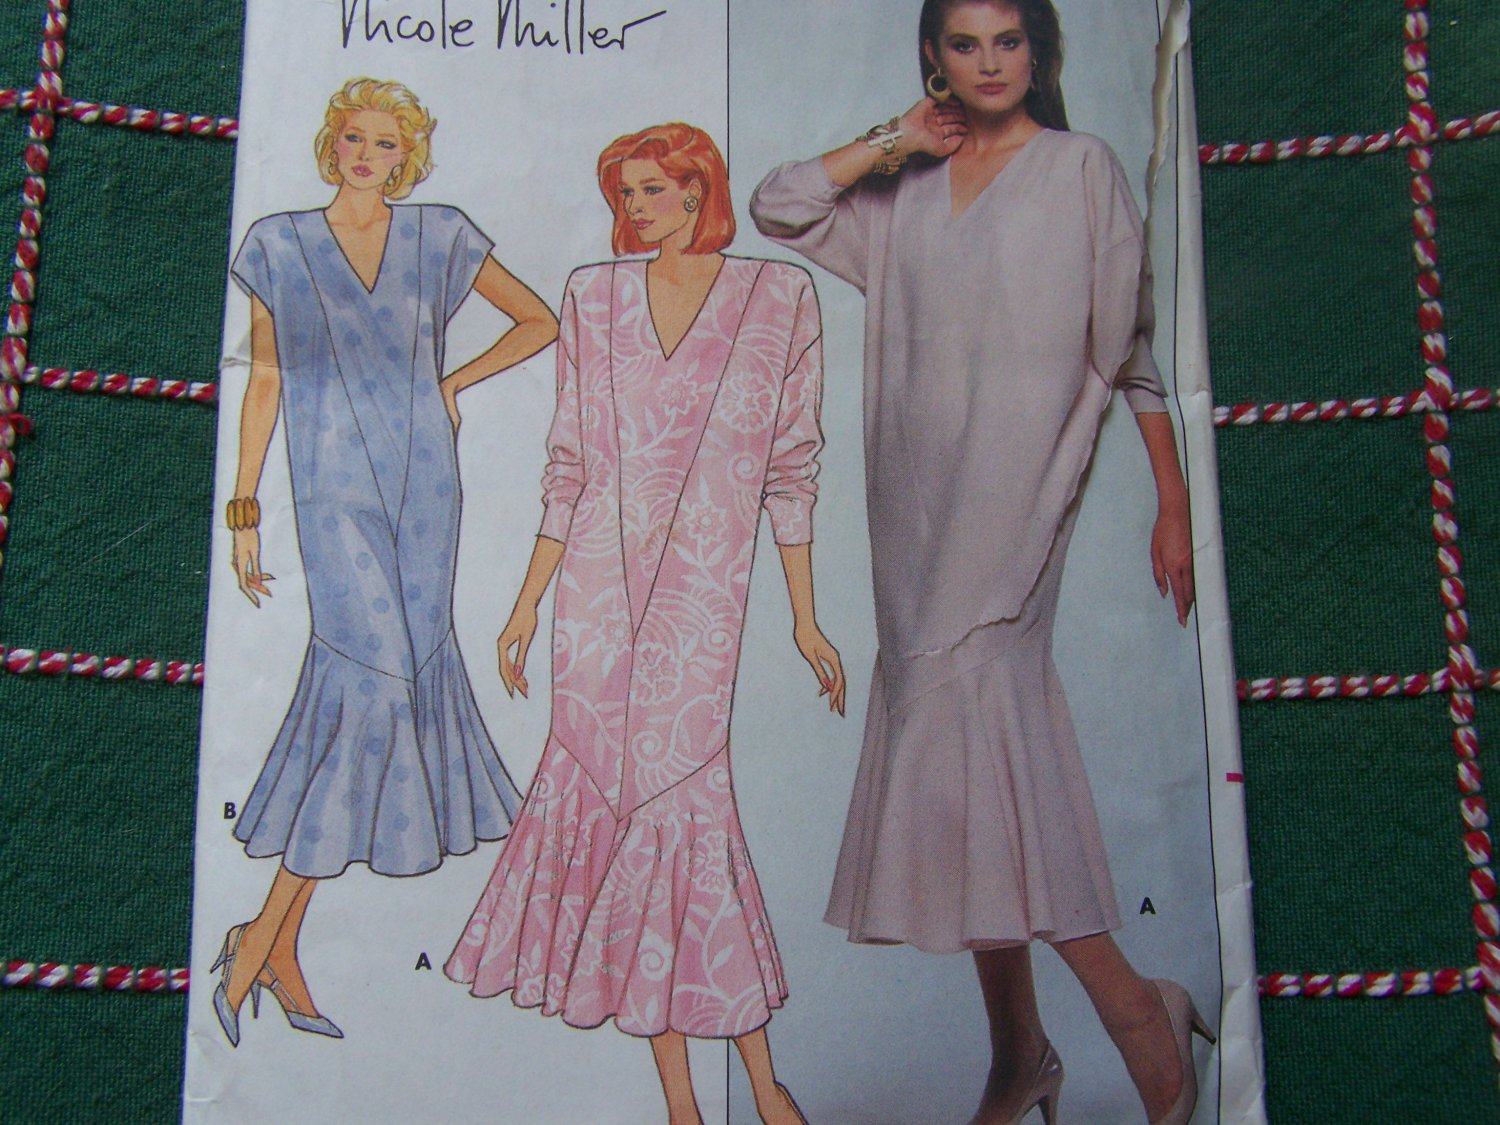 Uncut Nicole Miller Fishtail Evening Dress Vintage Sewing Pattern 4325 Misses 12 14 16